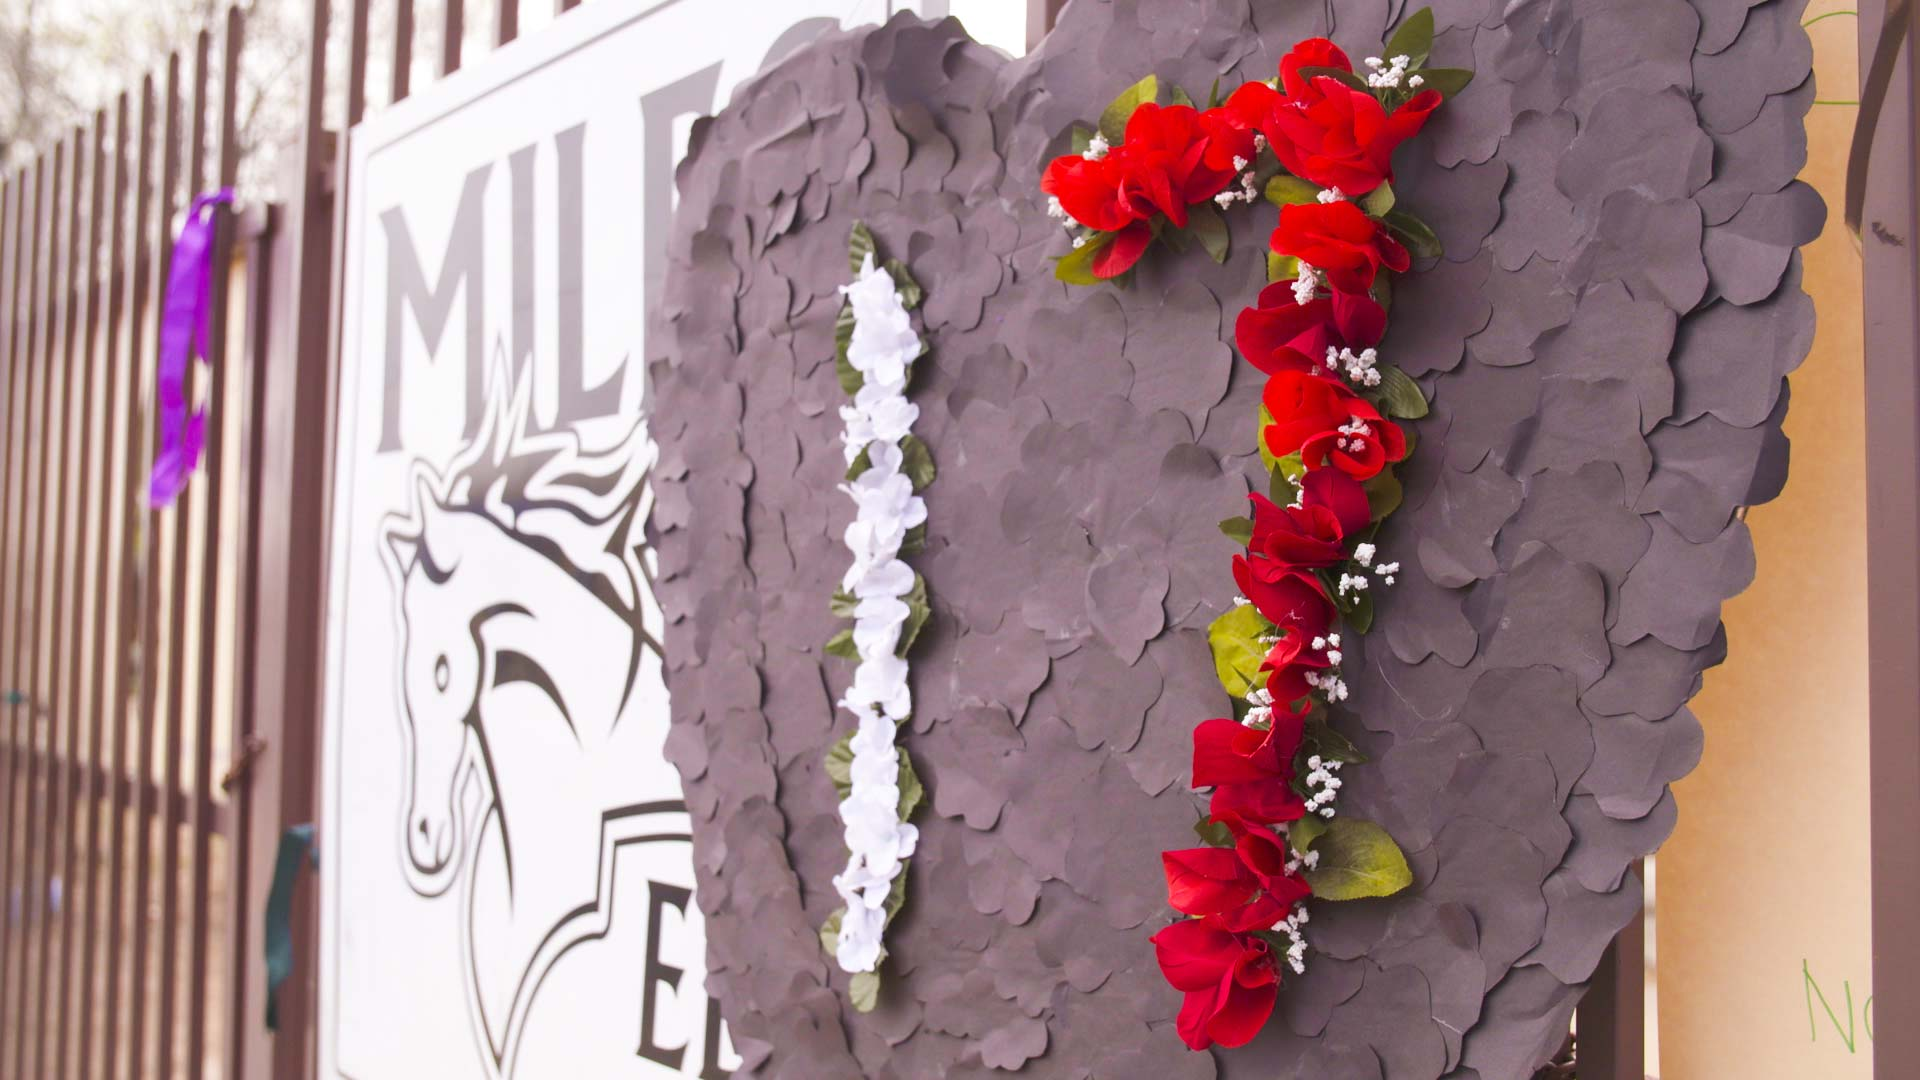 """A sign put up March 14 at the Miles Exploratory Learning Center in Tucson reading """"17"""" in remembrance of the 17 people killed in a Parkland, Florida, school shooting one month before."""